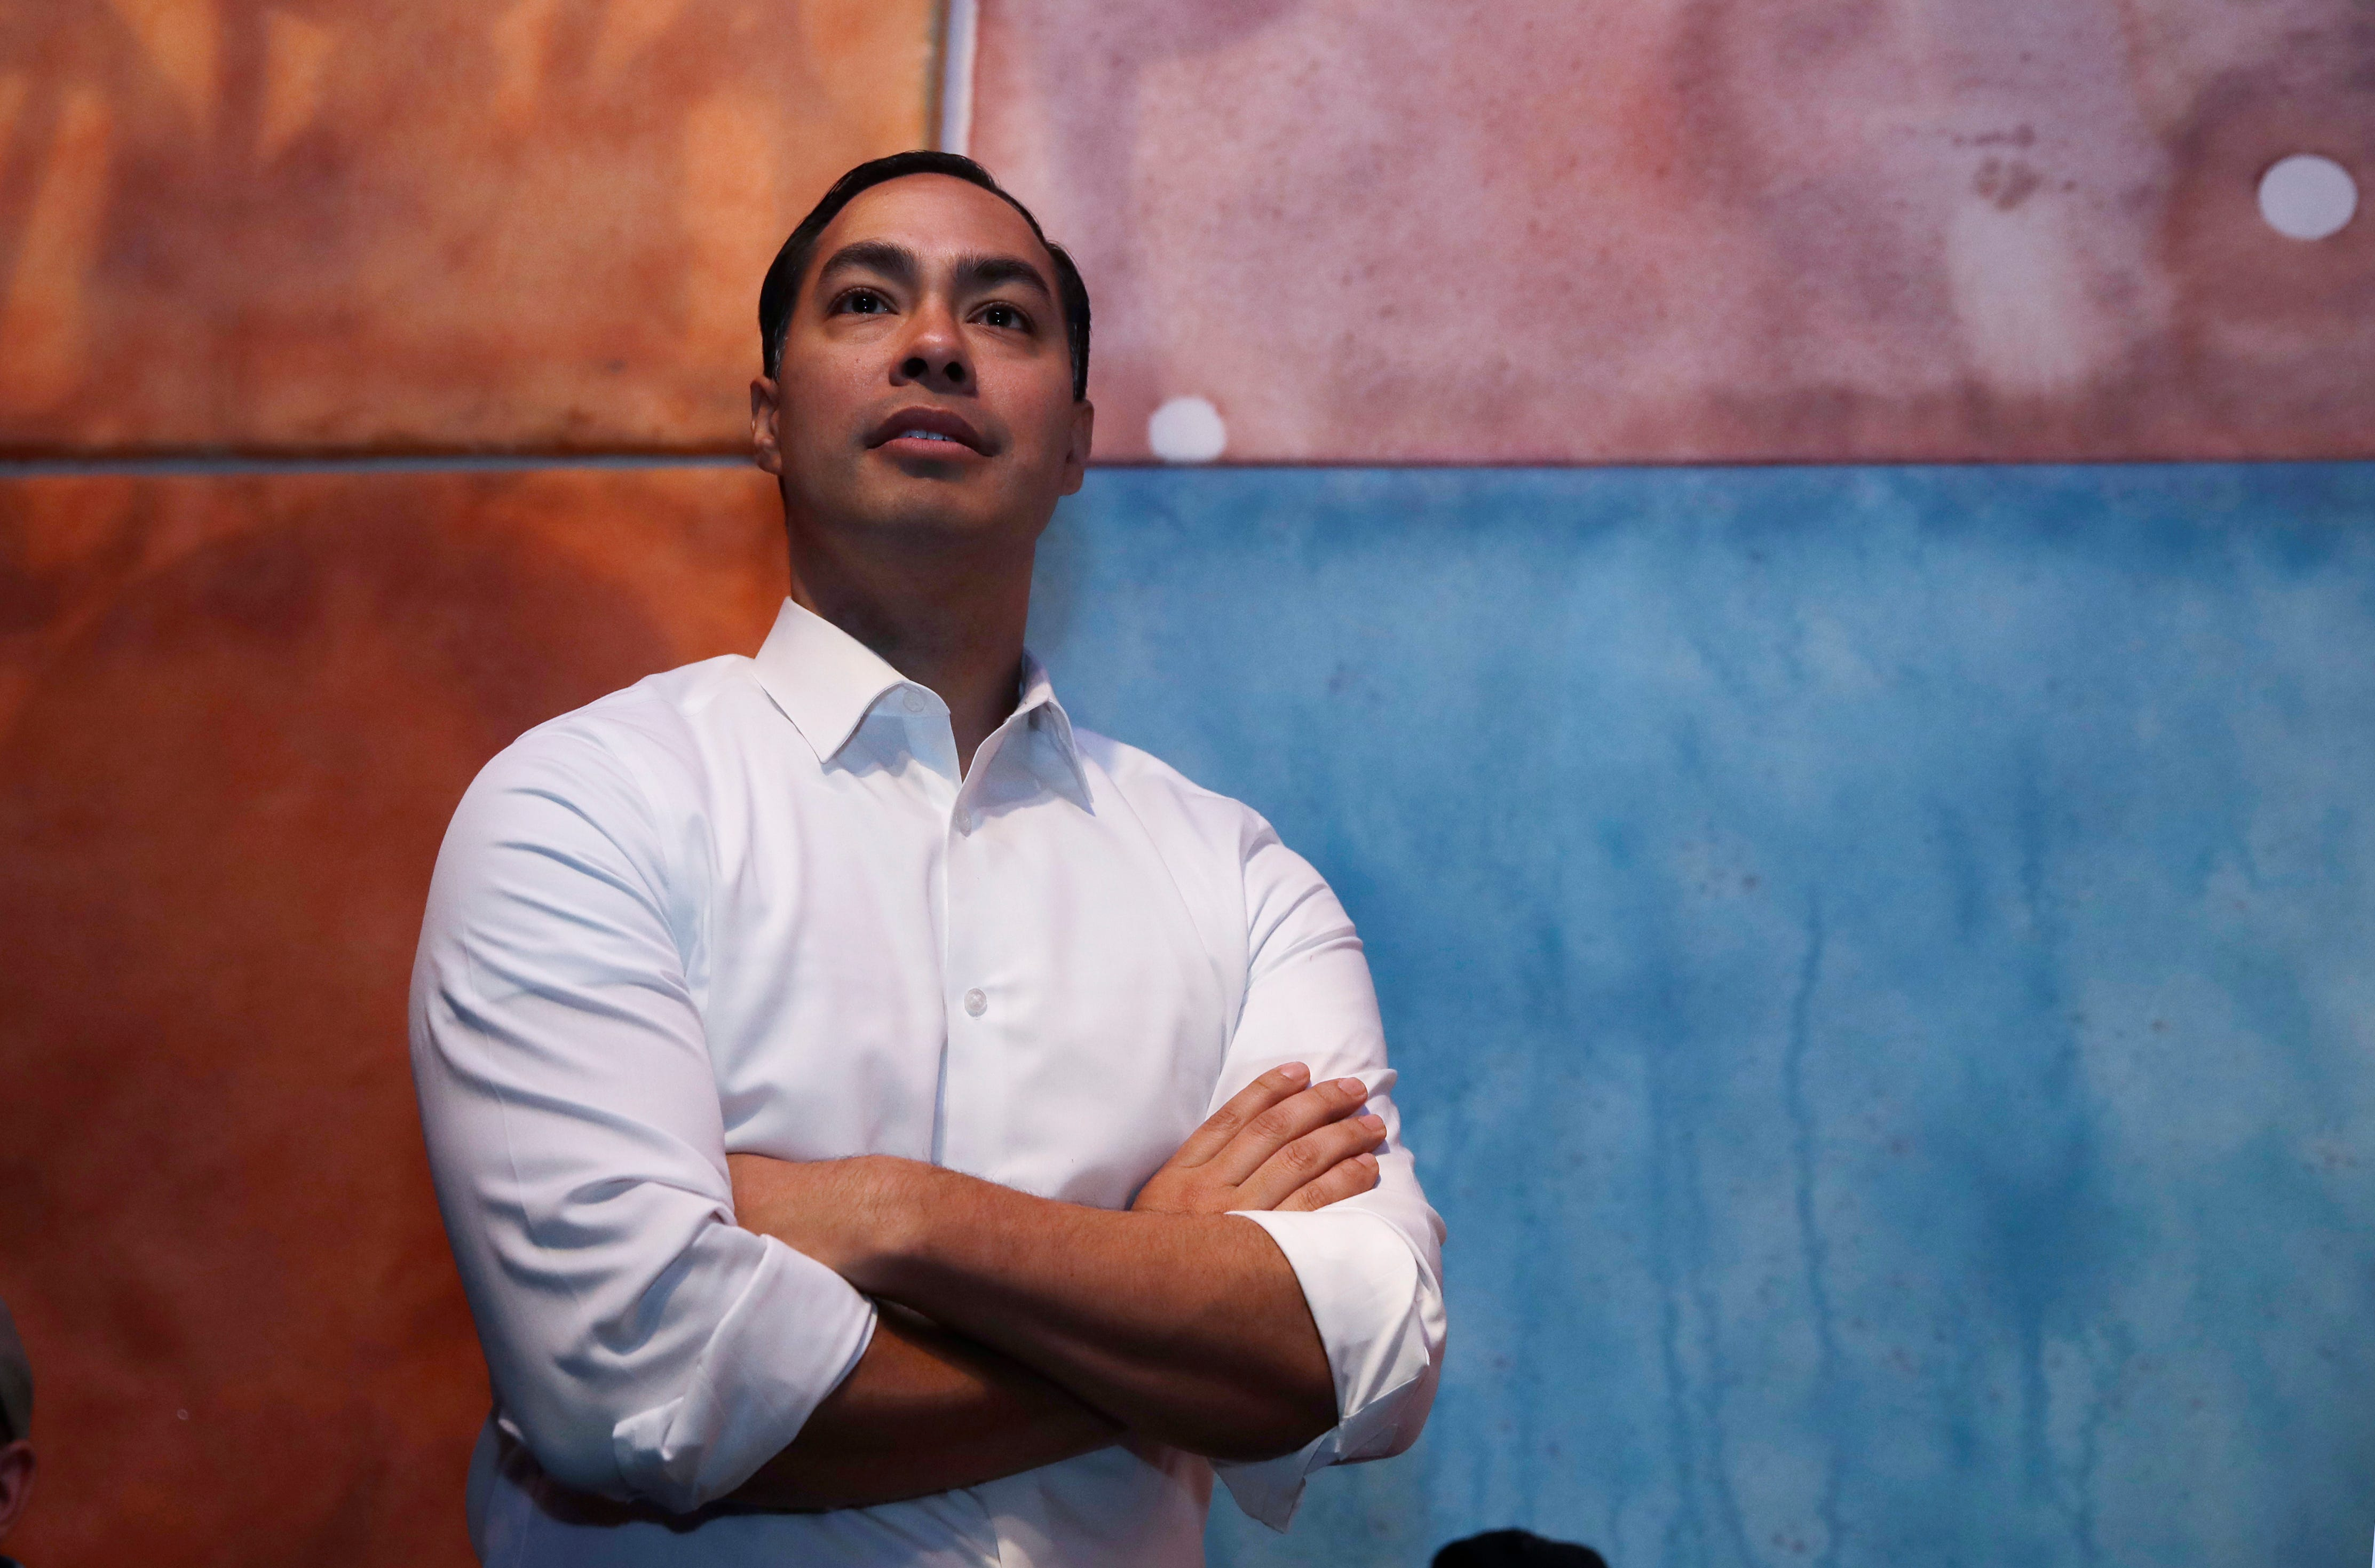 Julian Castro carries generations of Latino ambition into 2020 presidential election